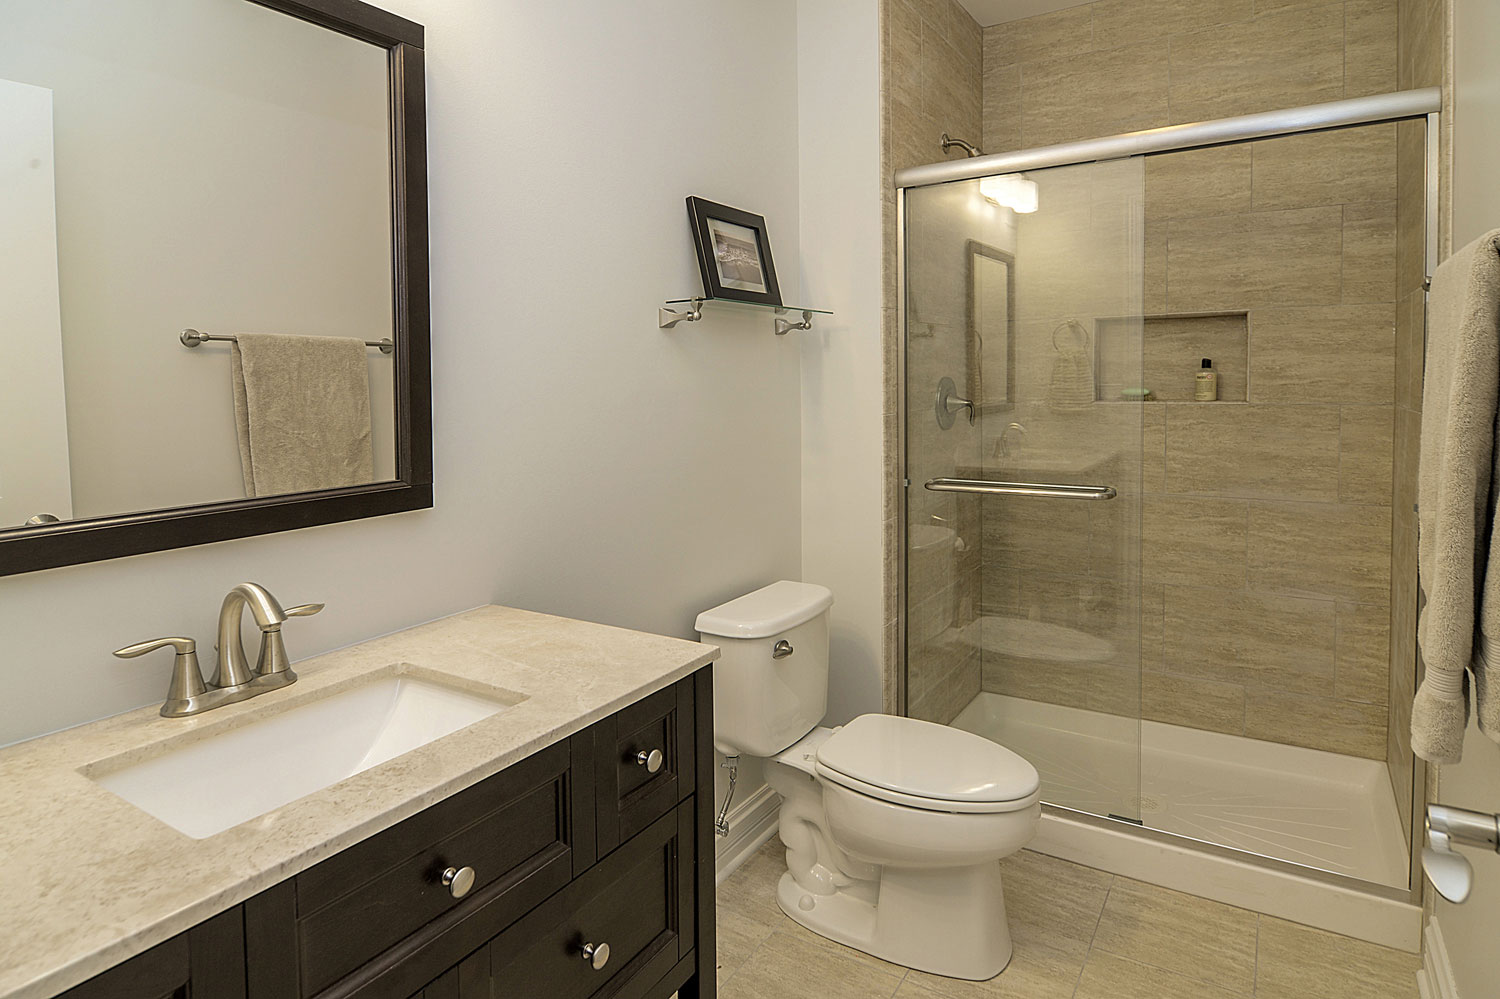 Steve emily 39 s hall bathroom remodel pictures home for Remodeling your bathroom ideas